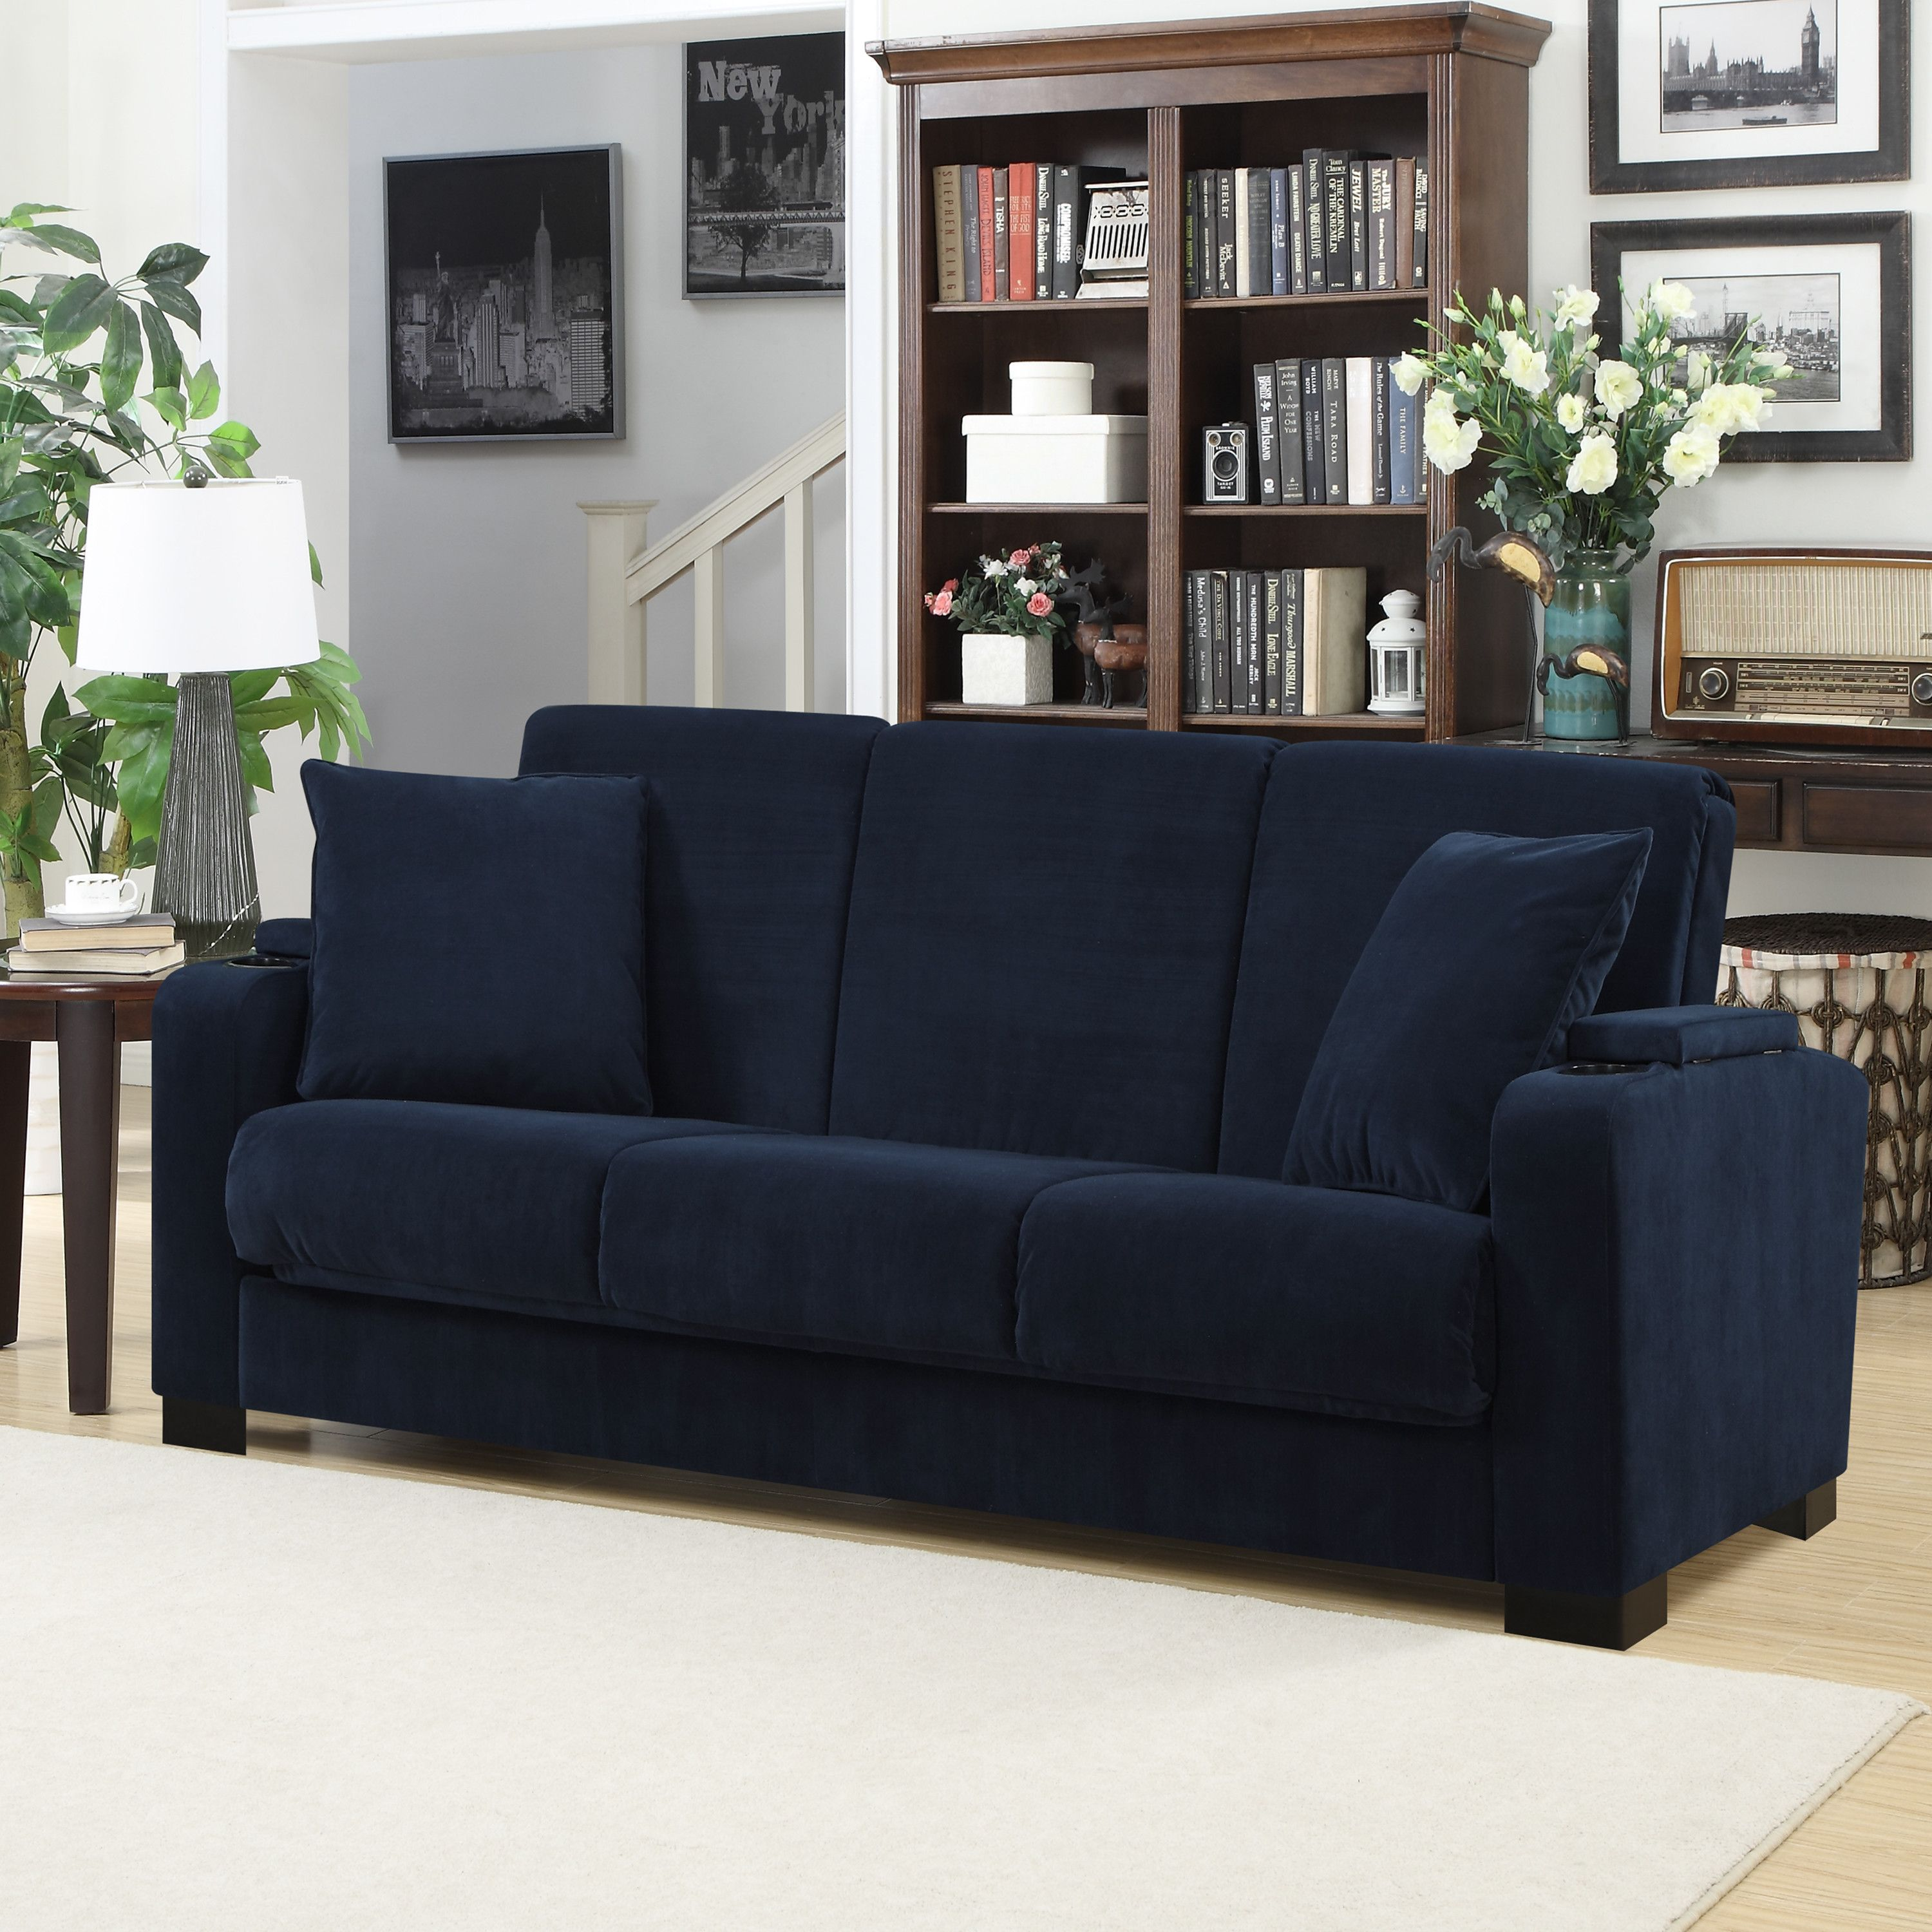 Handy Living Olivia Convert A Couch Sleeper Sofa